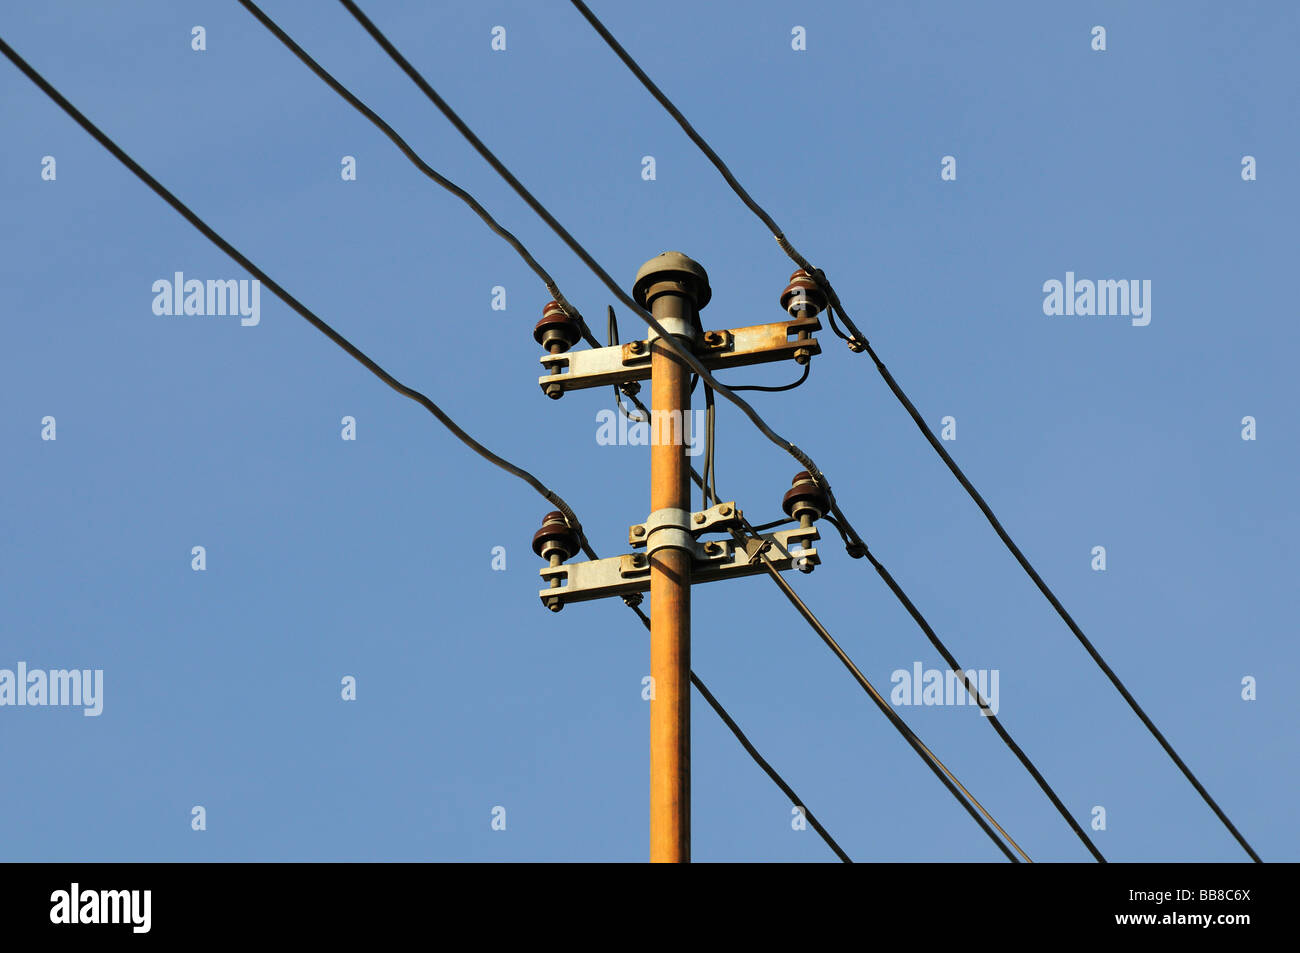 View of an old house utility pole with 4 wires and ceramic insulators in front of a blue sky, power supply - Stock Image